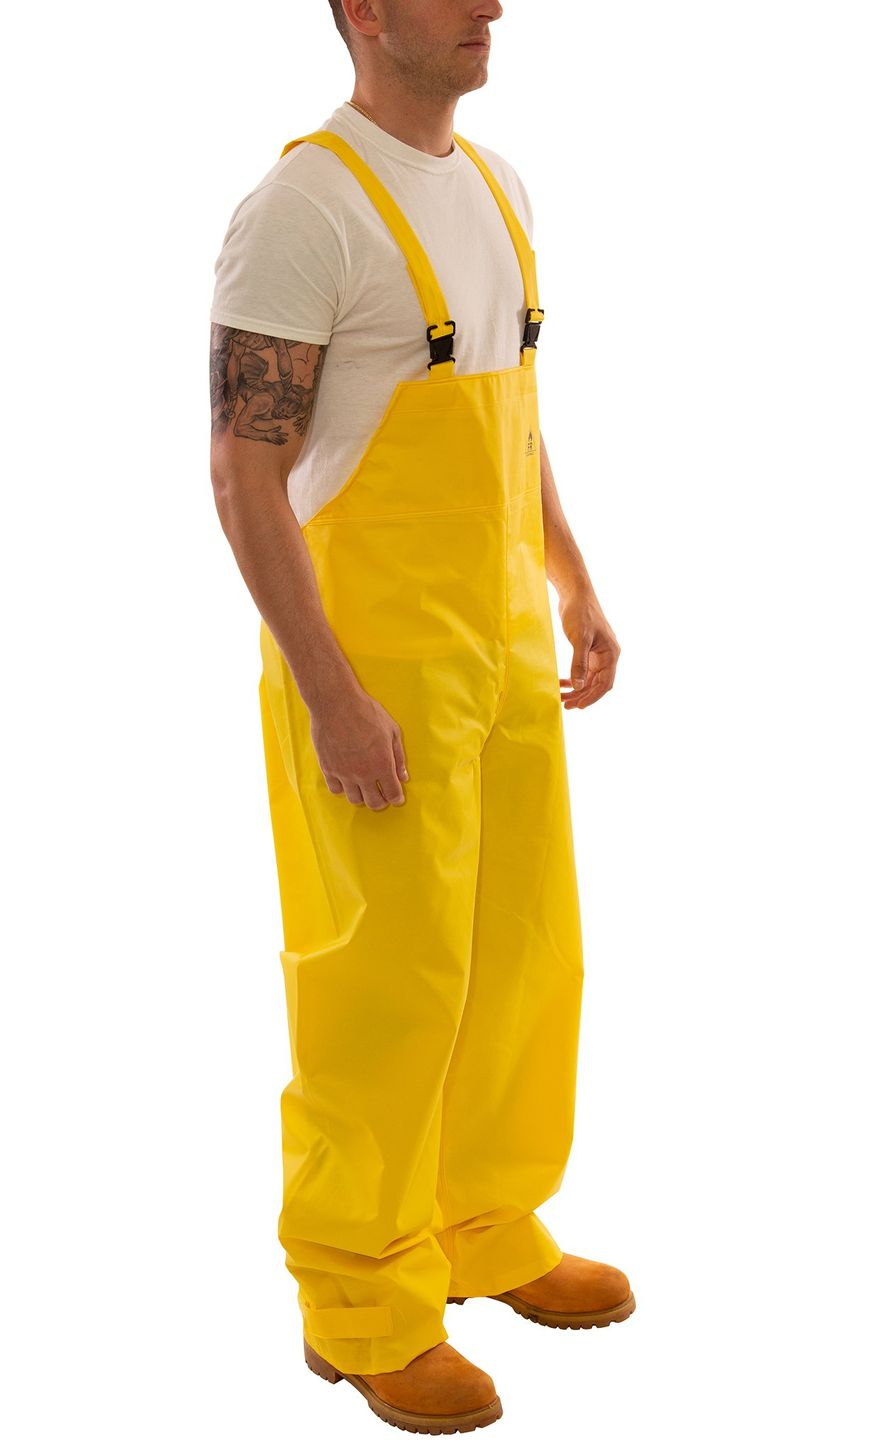 tingley-o56047-durablast-flame-resistant-overalls-pvc-coated-chemical-resistant-side.jpg